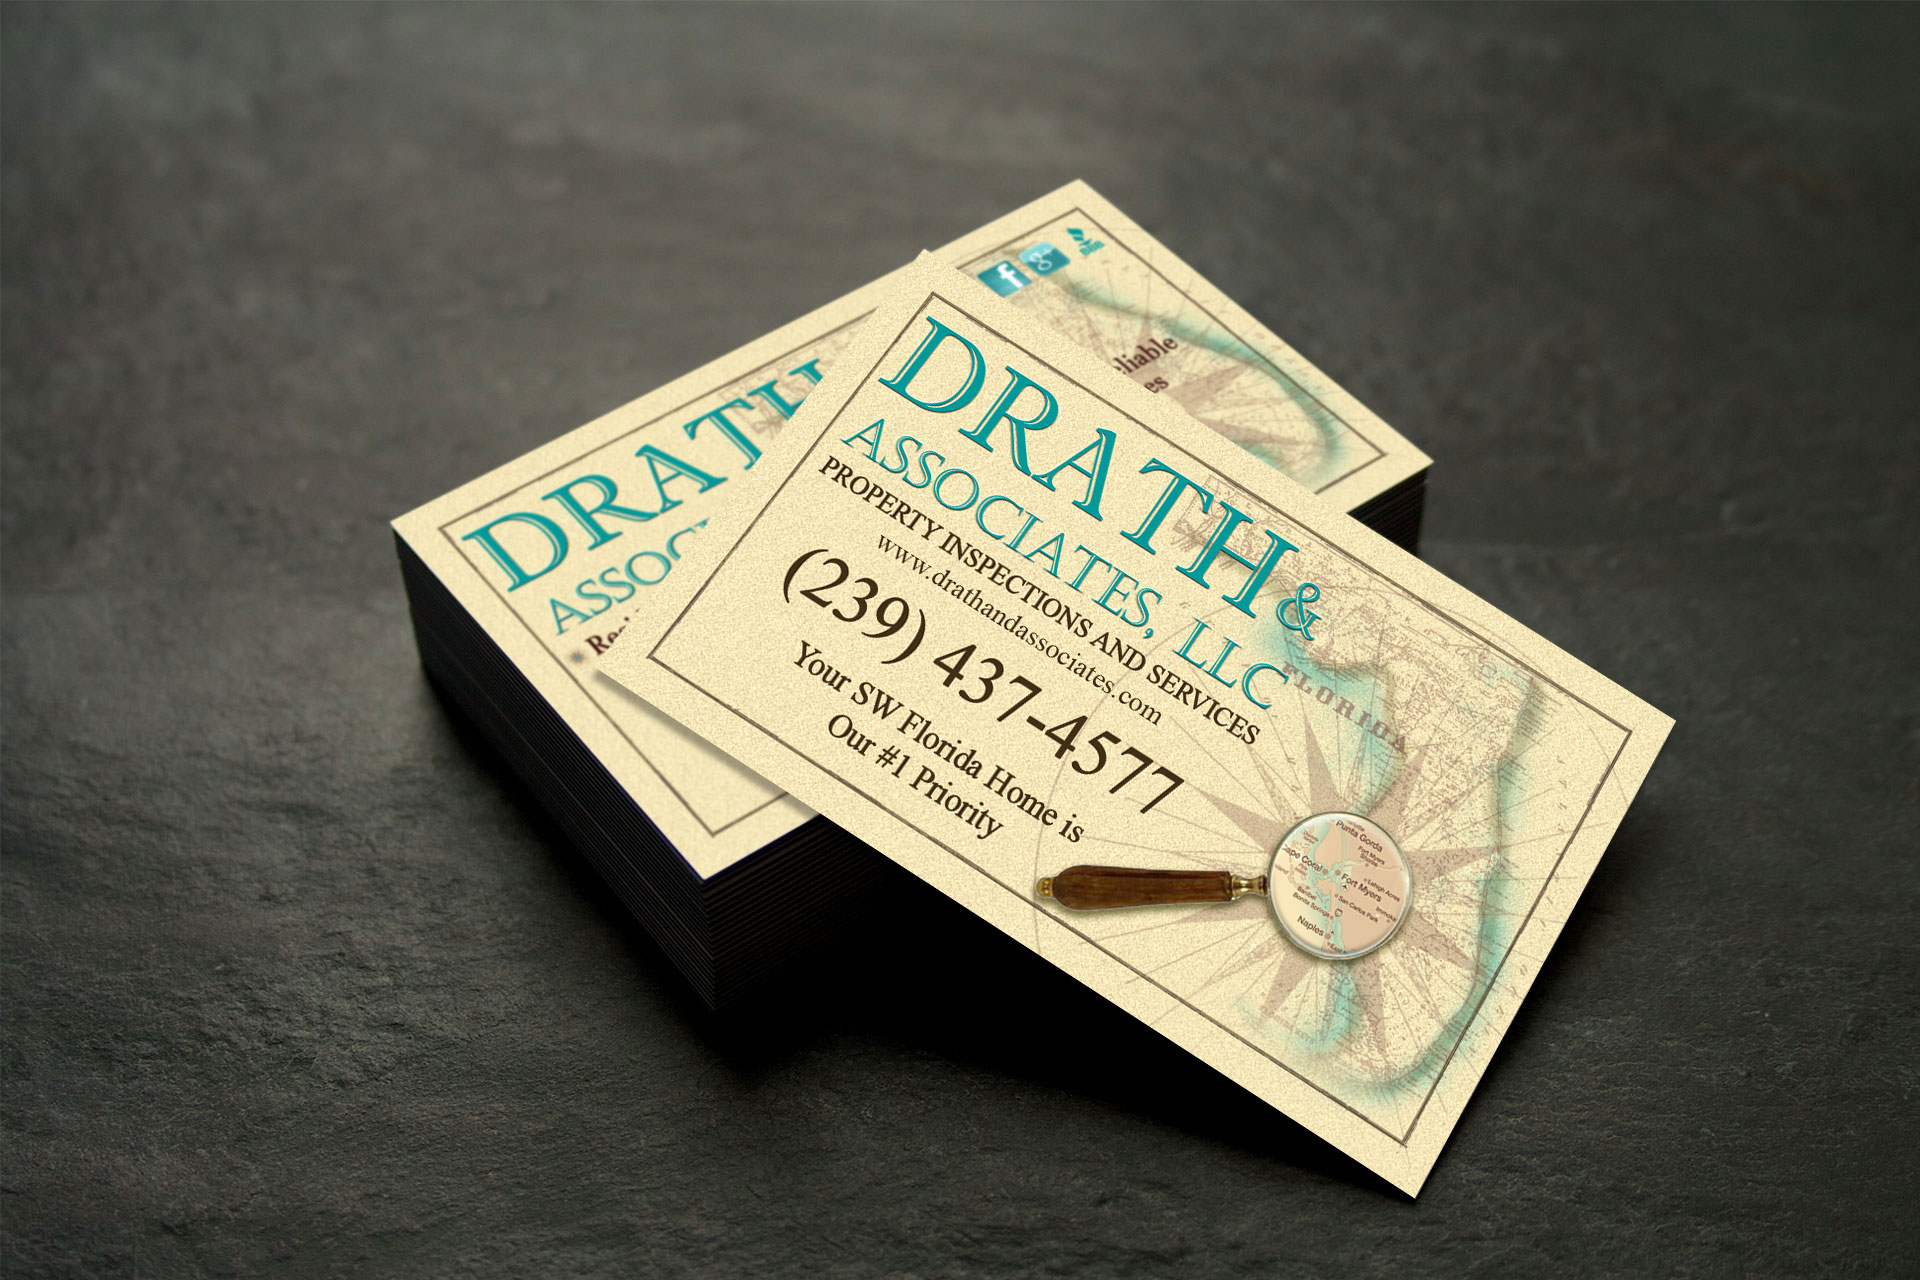 Drath & Associates Business Cards